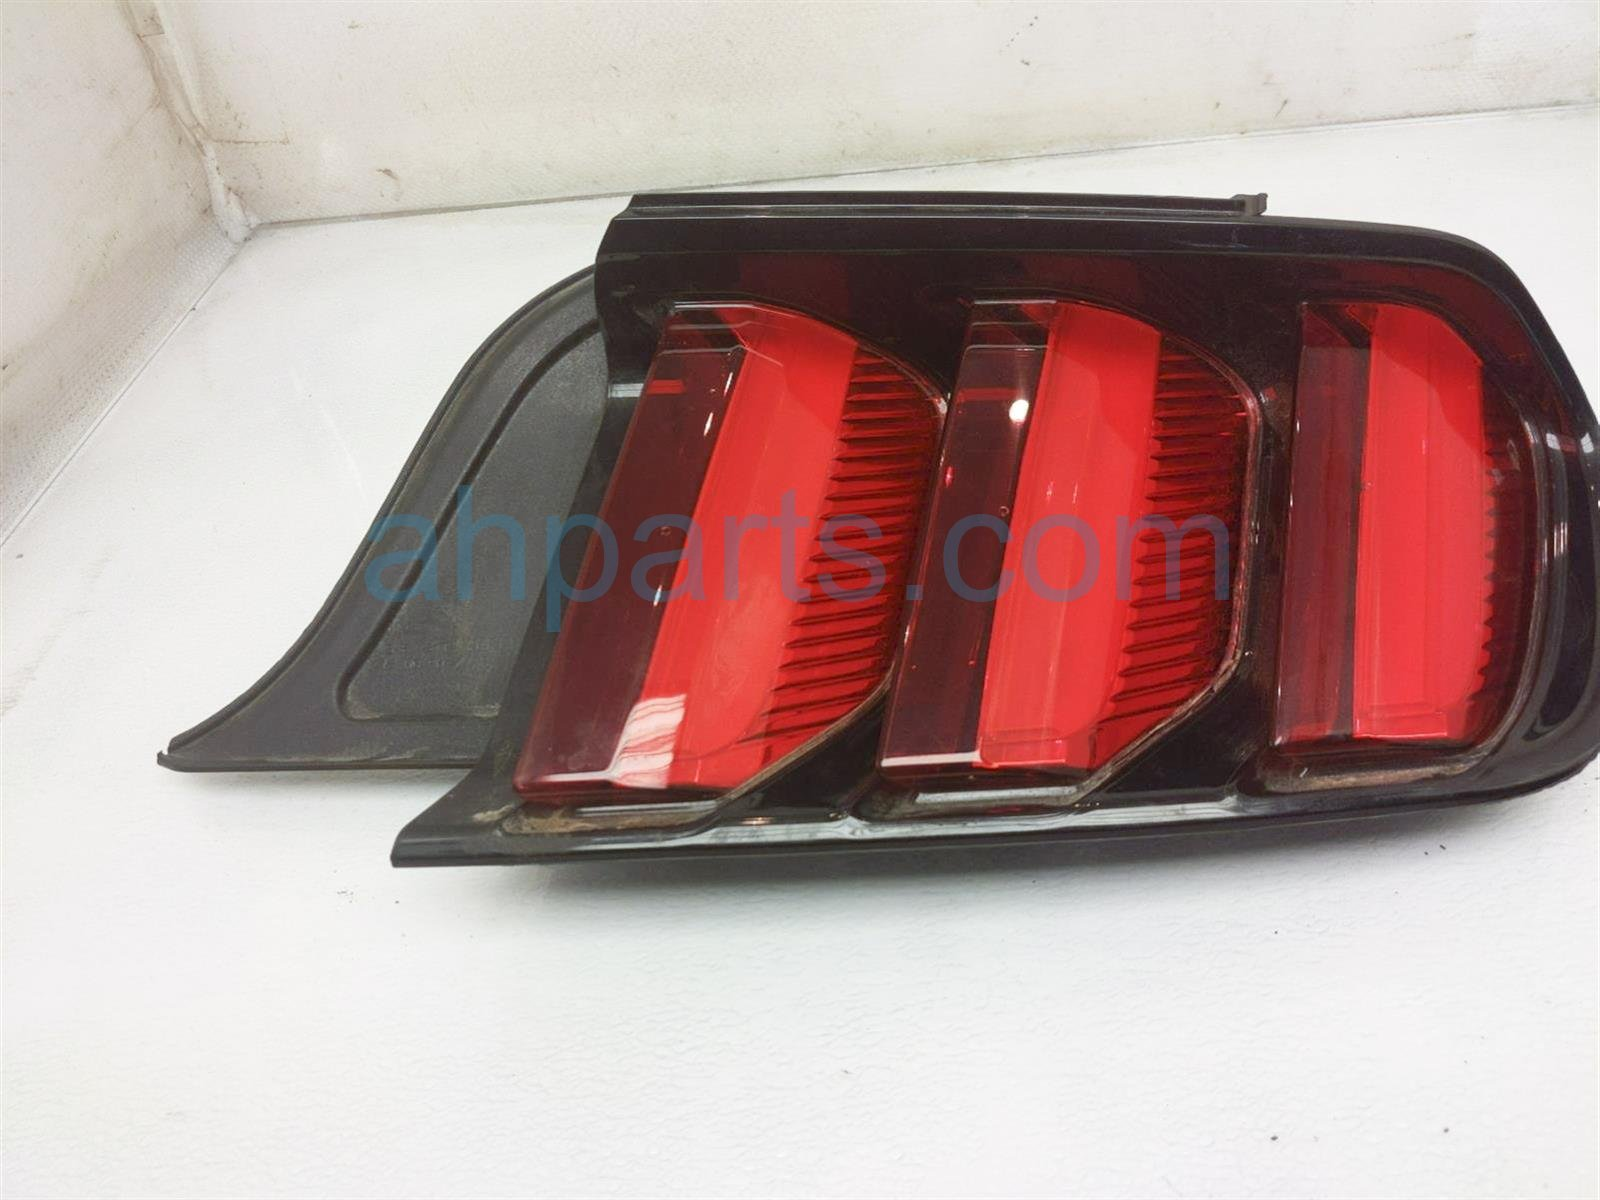 2017 Ford Mustang Rear Passenger Tail Lamp / Light (on Body) GR3Z 13404 C Replacement